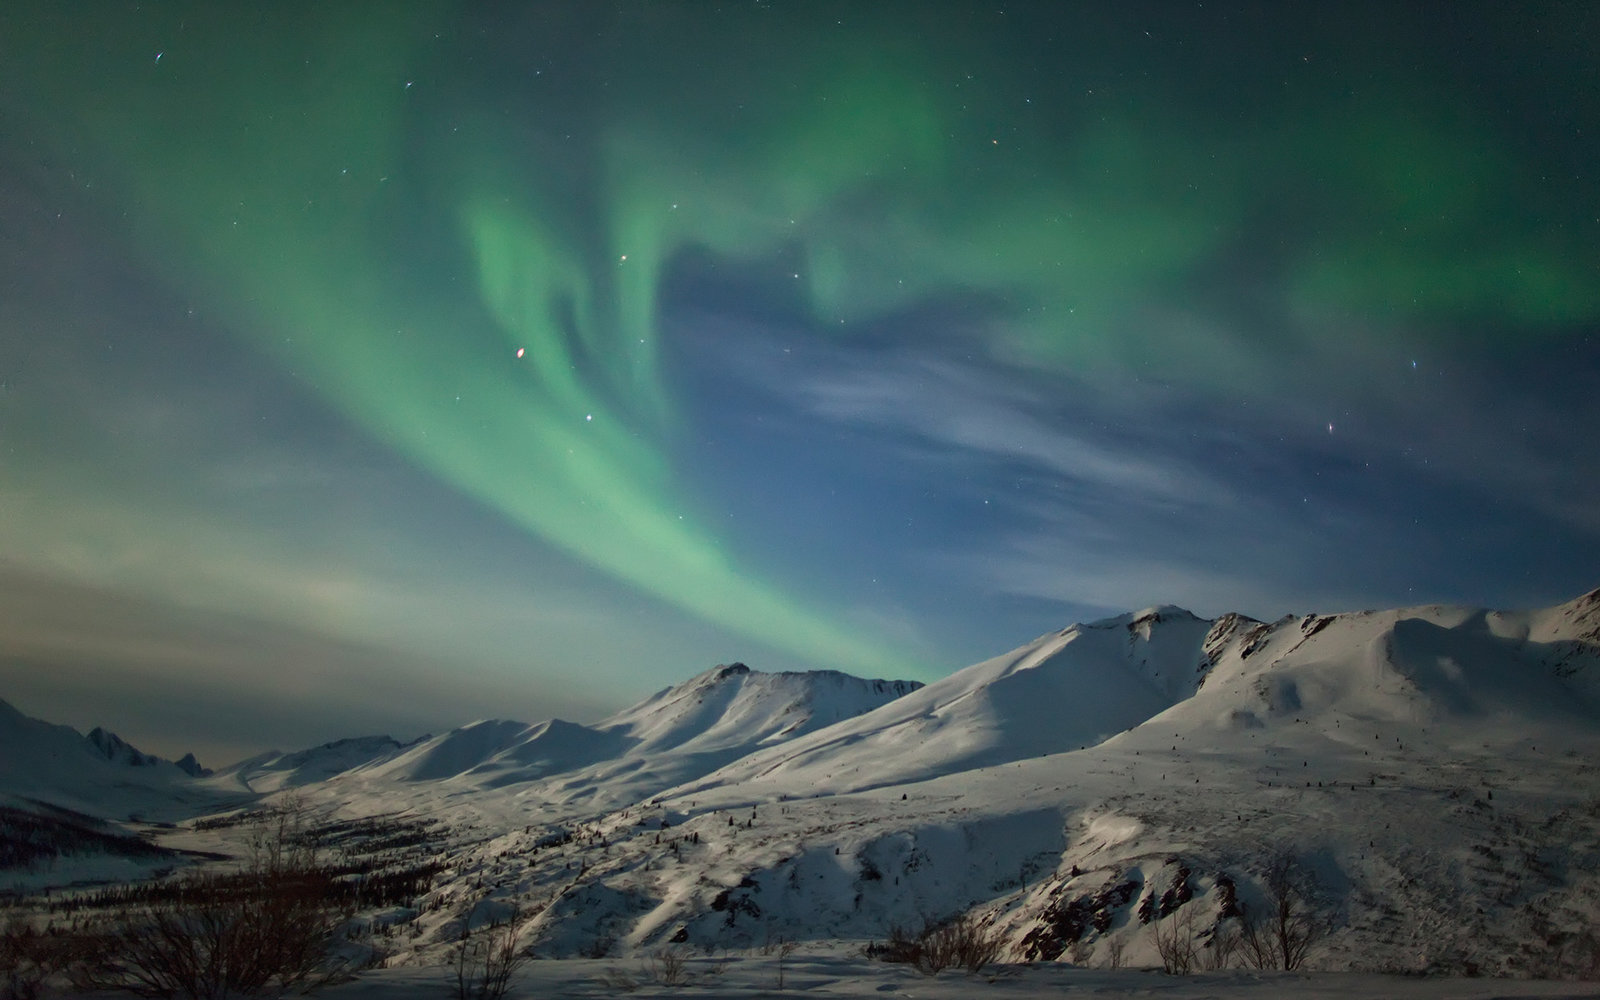 See the Northern Lights in Yukon Territory